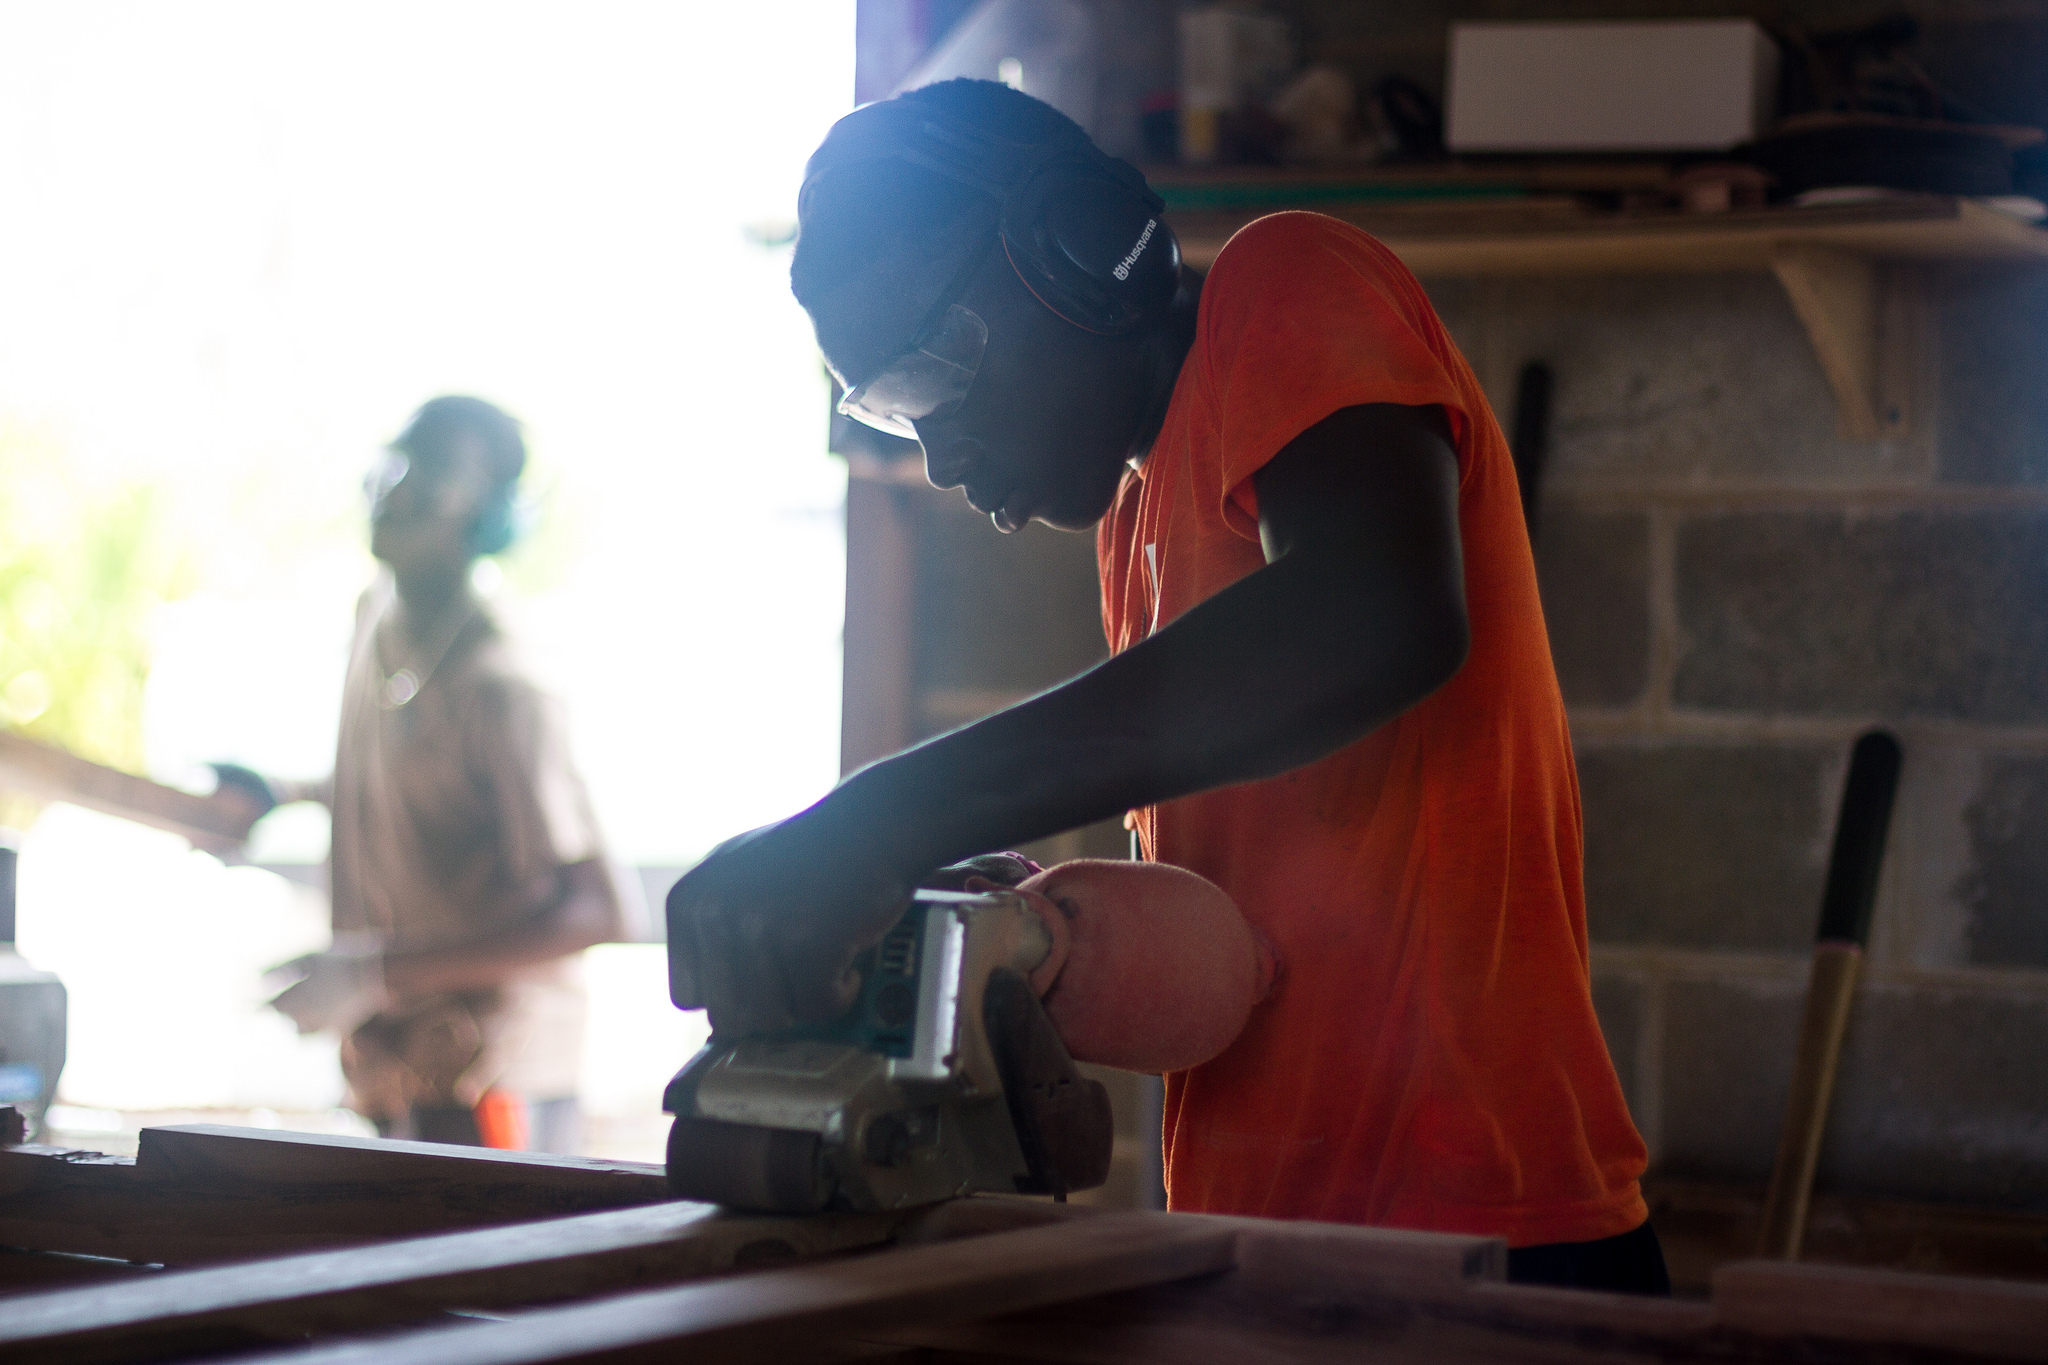 The woodshop is part of the Center for Sustainable Development, which is one of the locations on campus where participants are mentored.